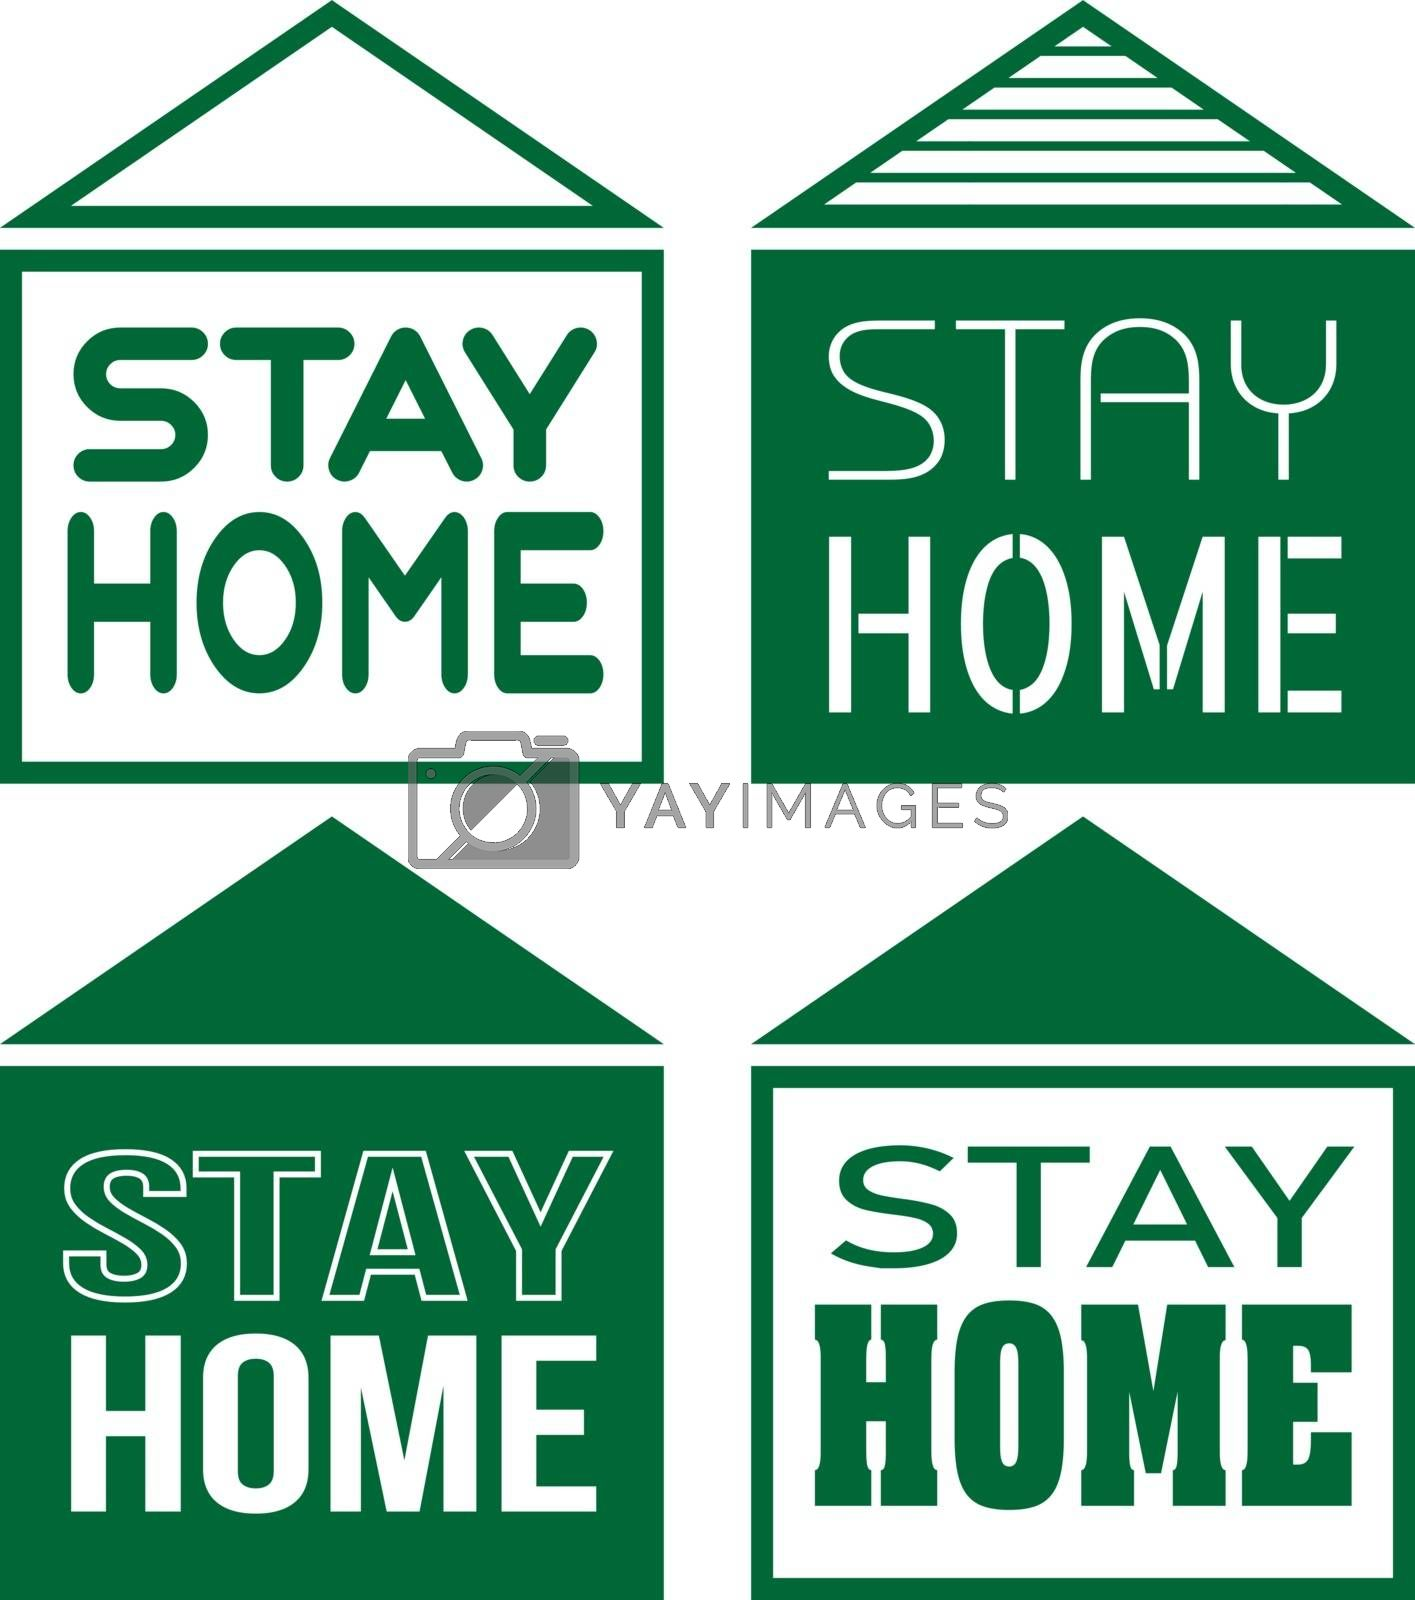 Four contour minimal simple green houses with text 'stay home'